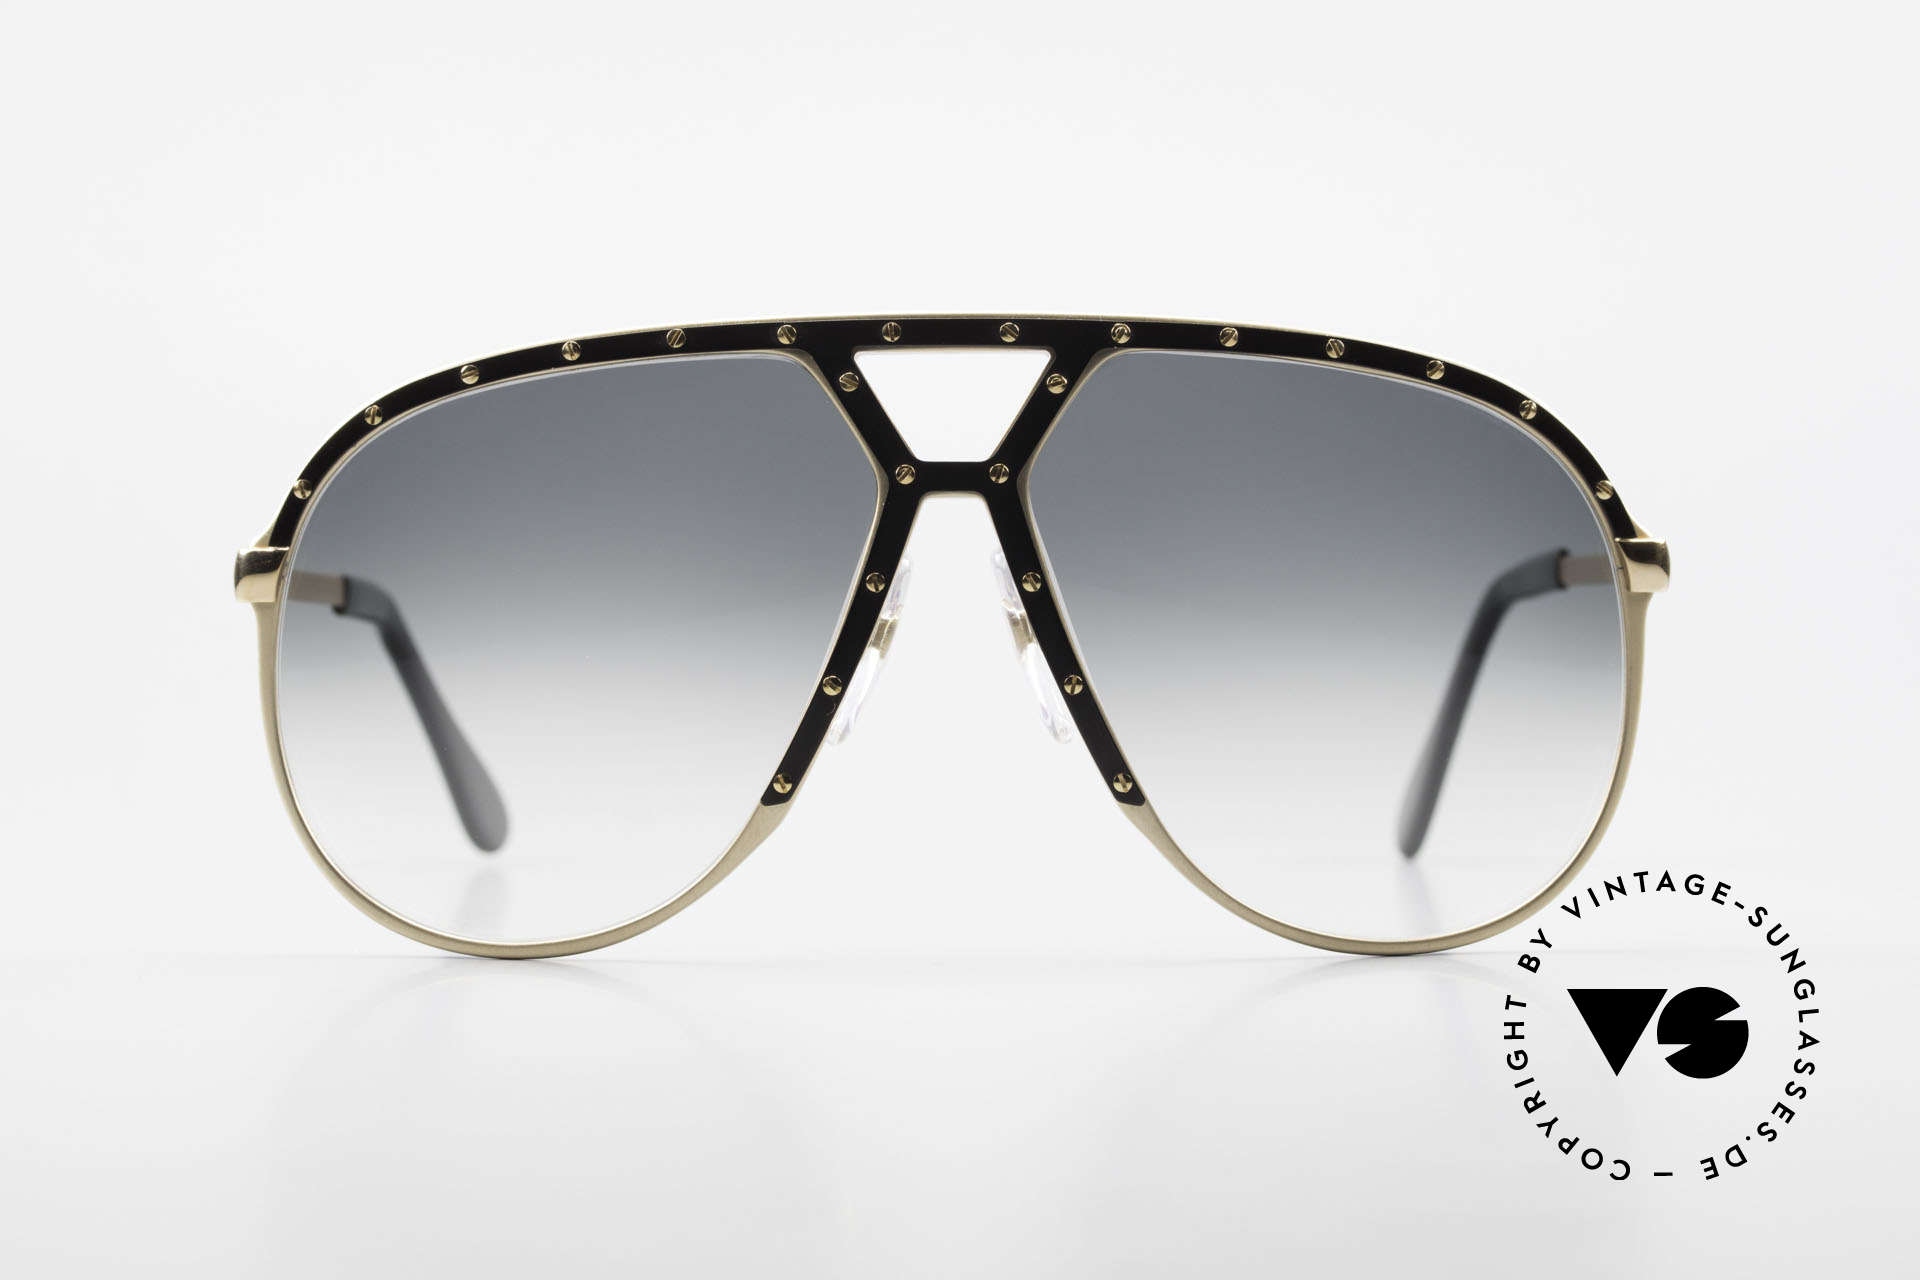 Alpina M1 Old 80's West Germany Shades, Stevie Wonder made the M1 model his trademark, Made for Men